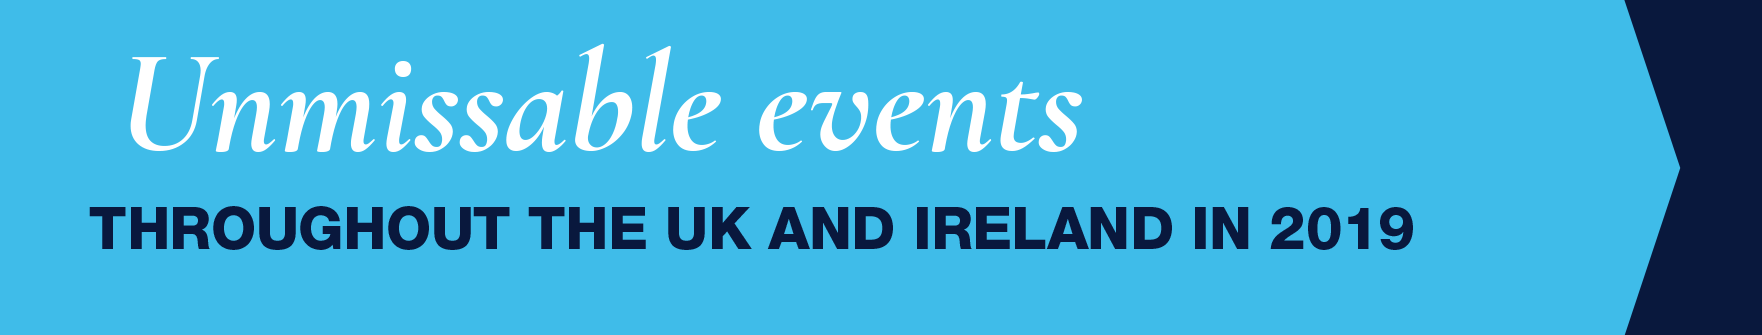 Unmissable Events Banner